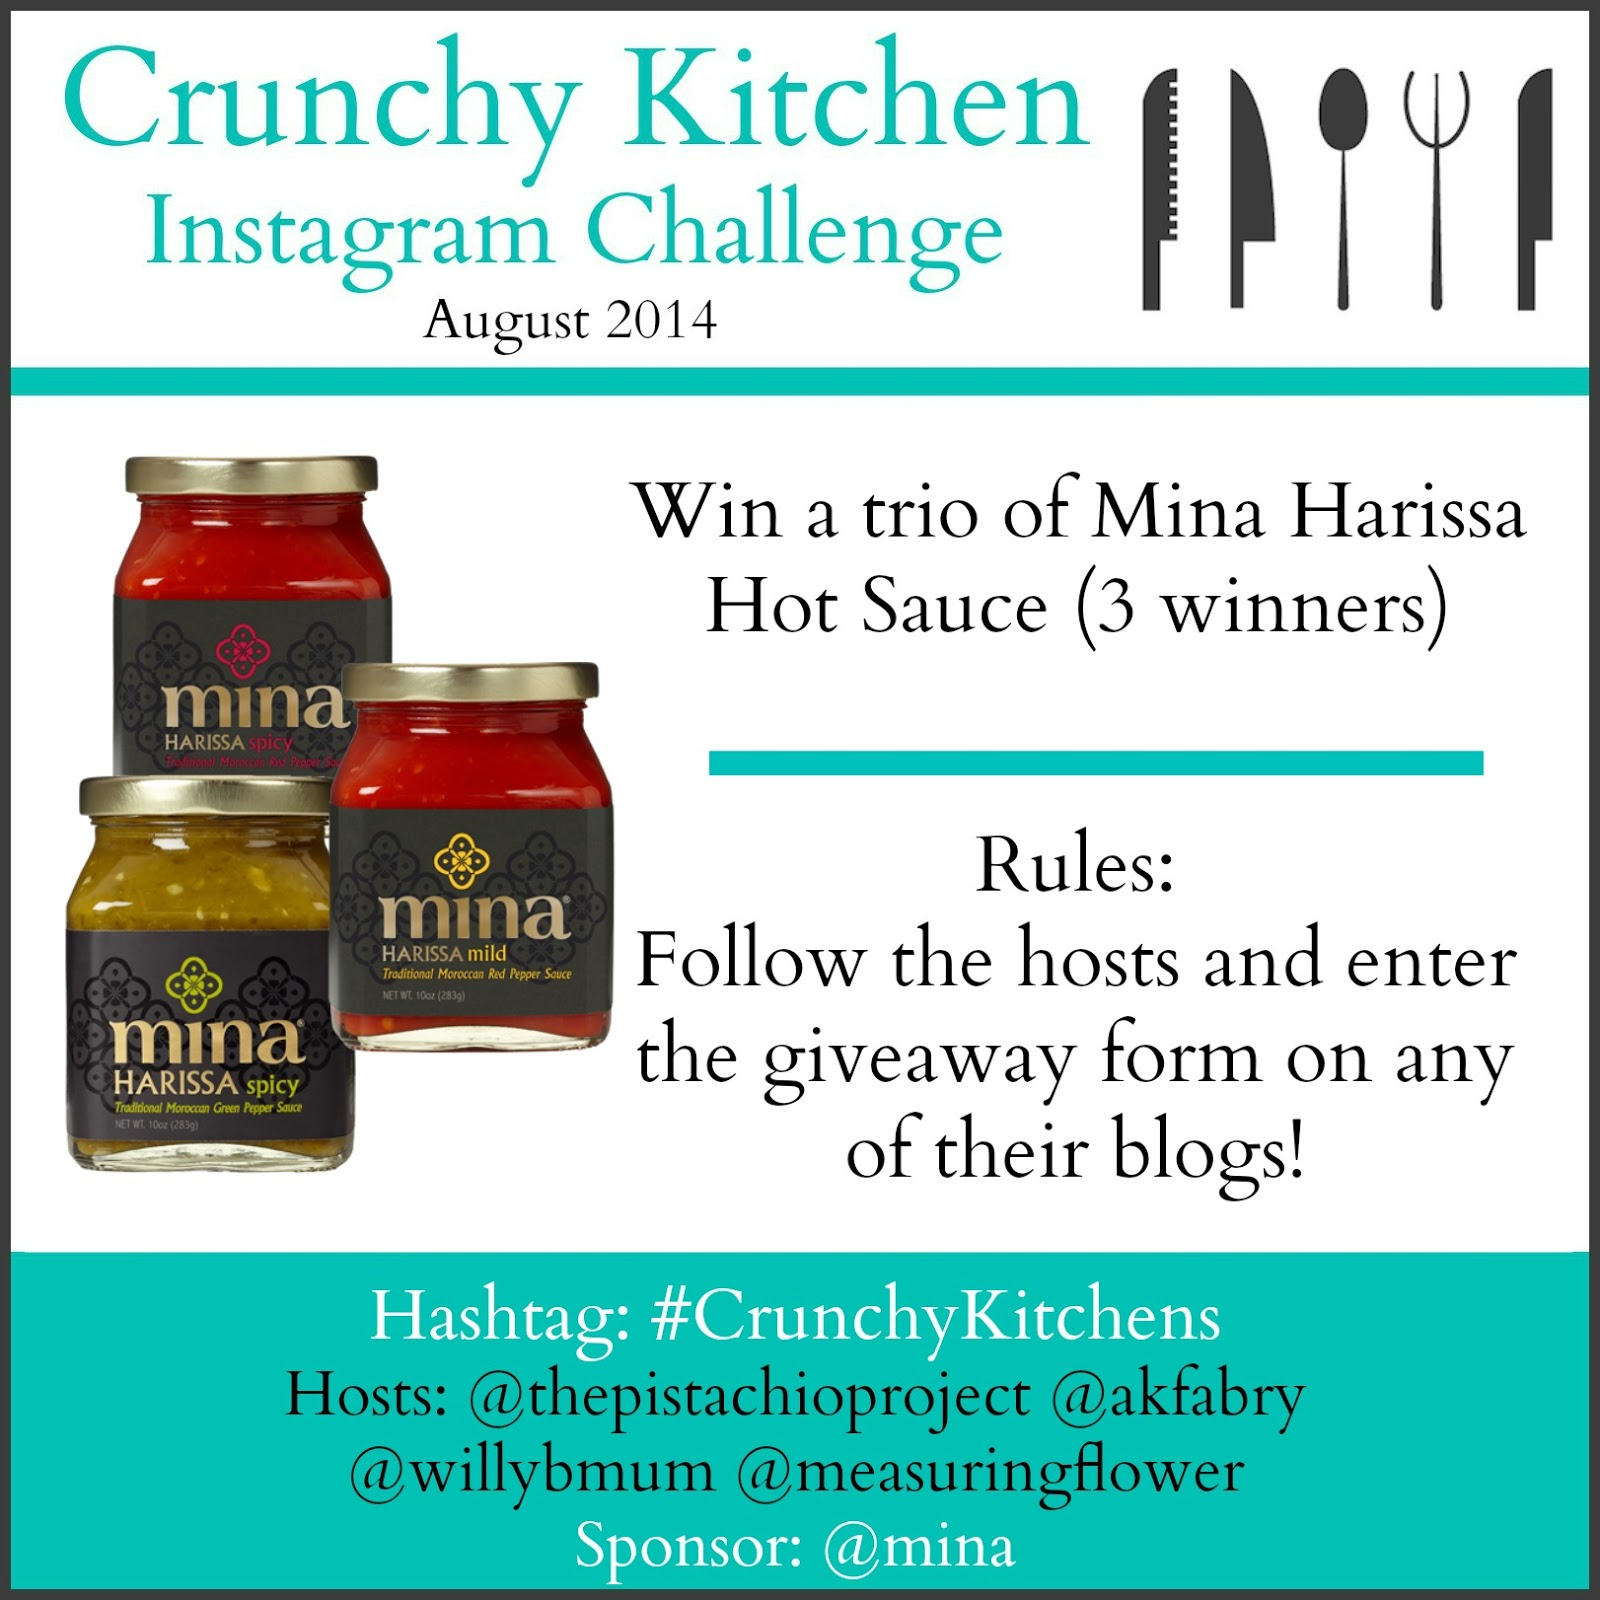 Crunchy Kitchens Instagram Challenge Giveaways